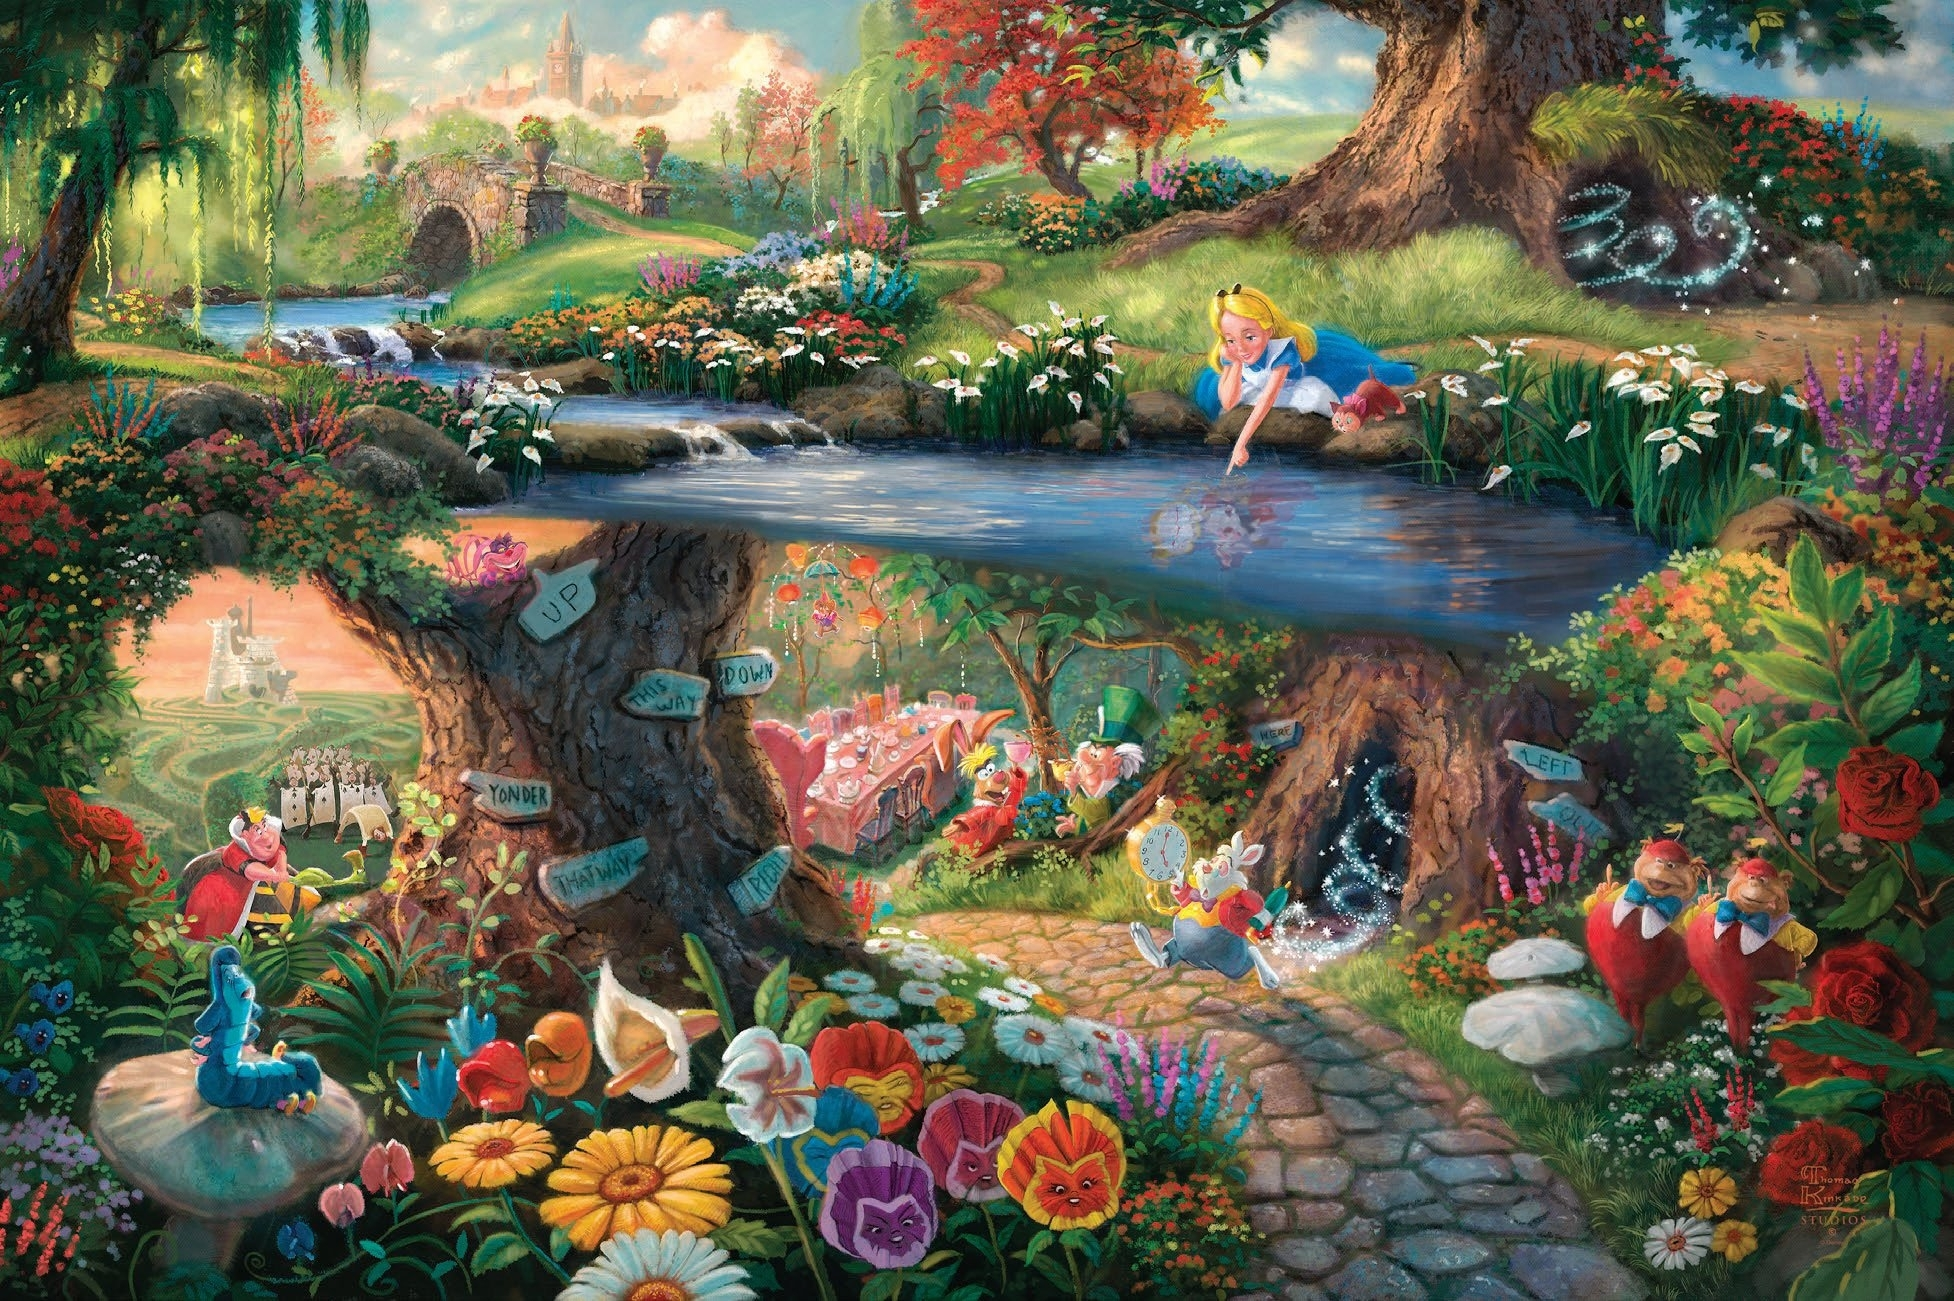 alice in wonderland (1951) full hd wallpaper and background image